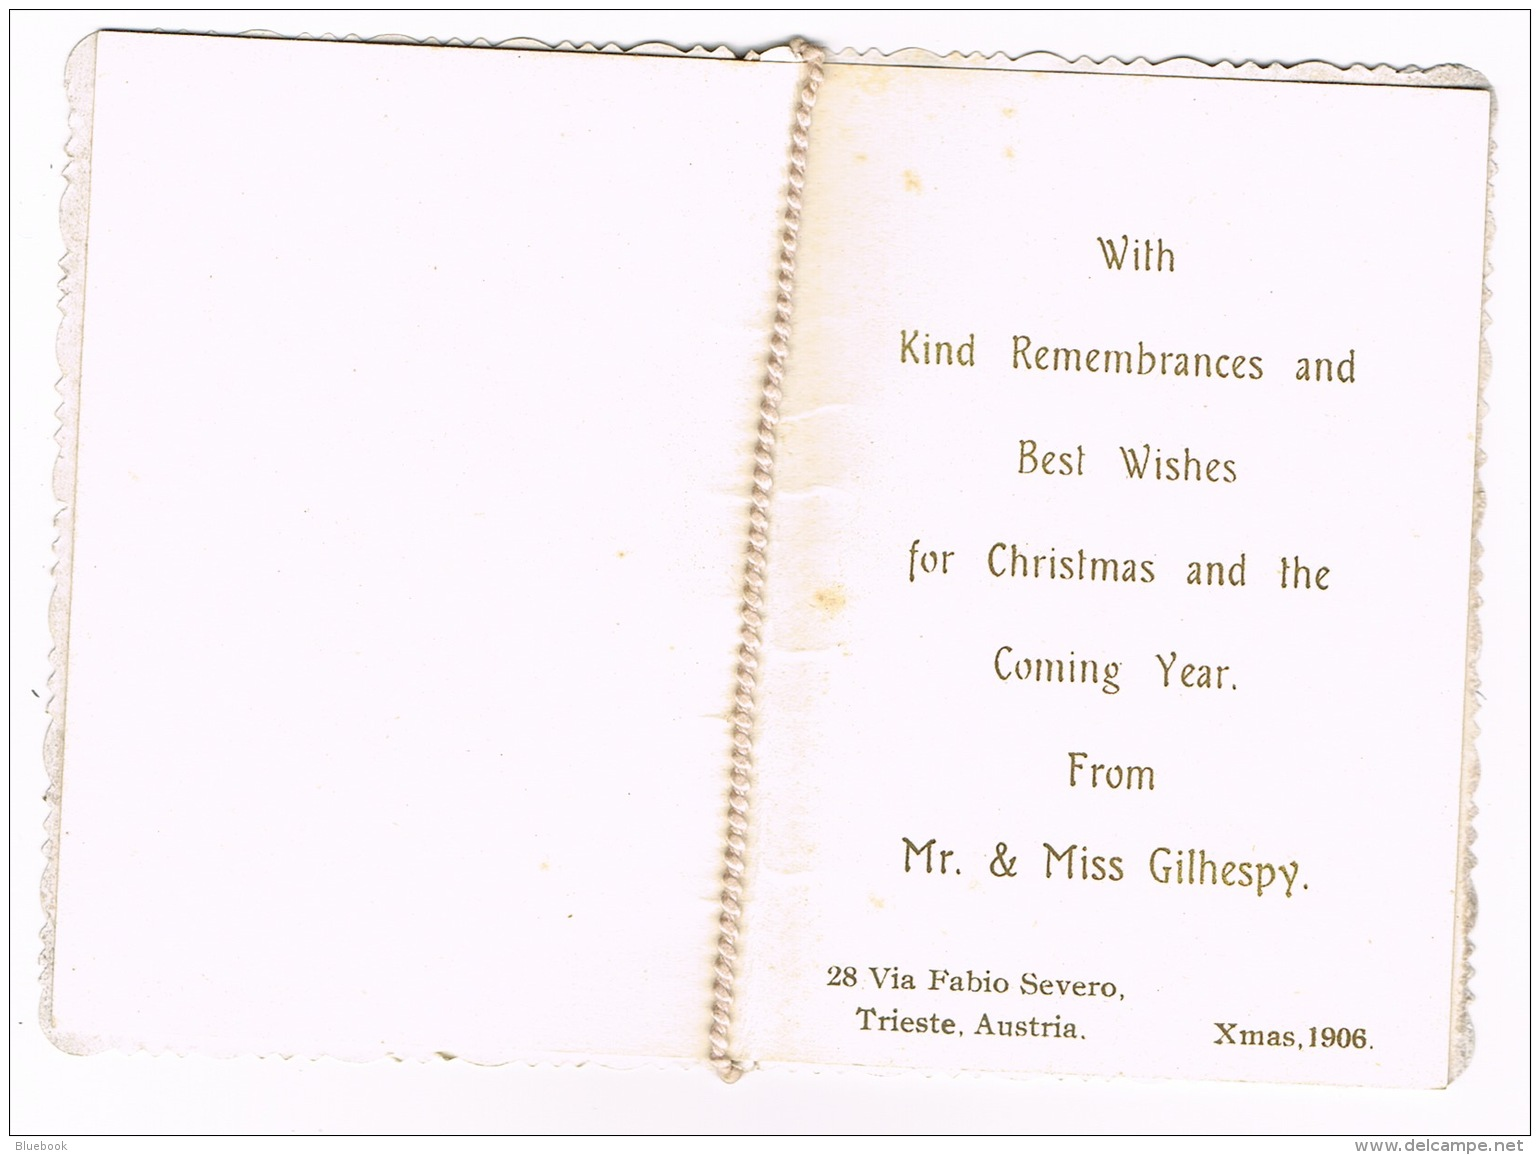 RB 1116 - 1906 Remembrance Xmas Christmas Card - Trieste Austria (Now Italy) - Mitteilung